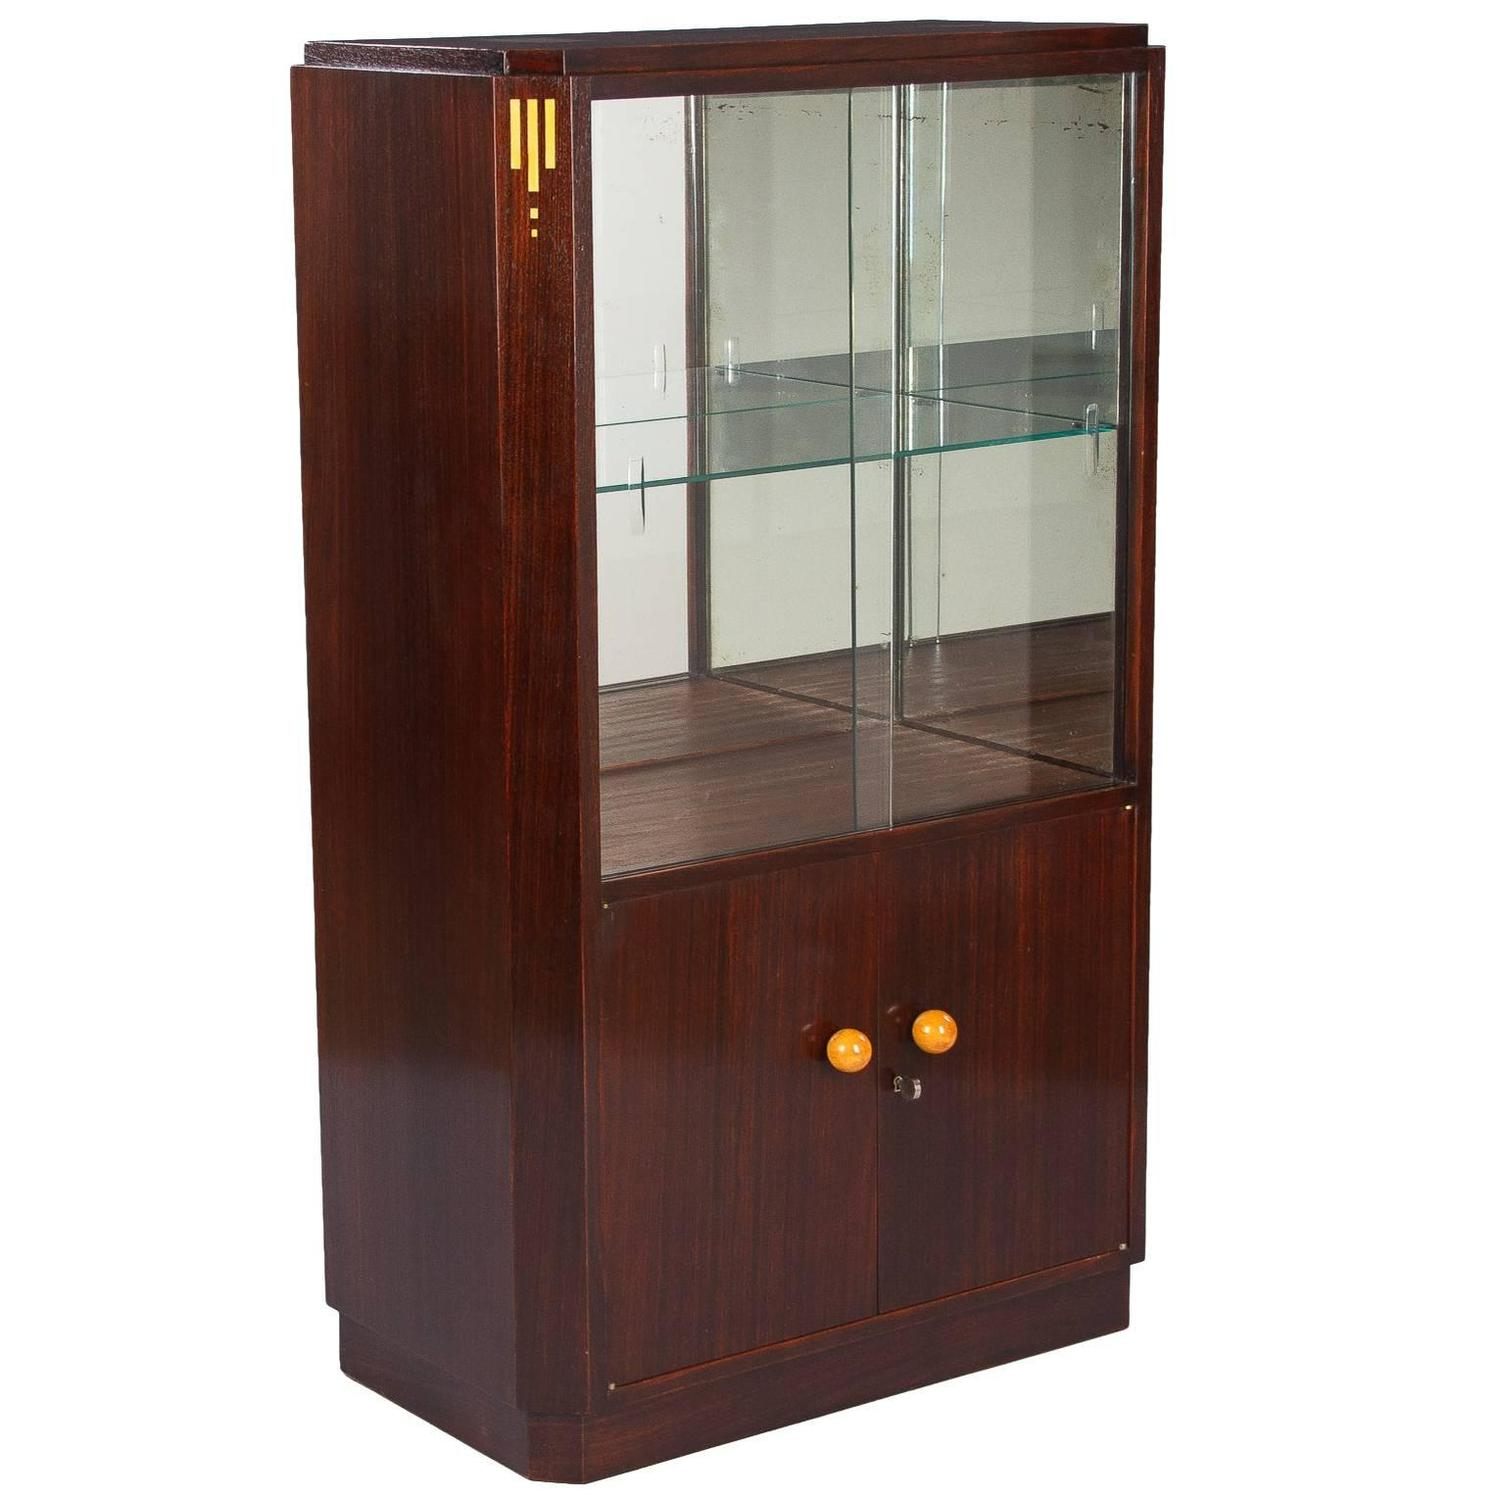 1930s French Art Deco Rosewood Bar or Vitrine Cabinet For Sale at ...